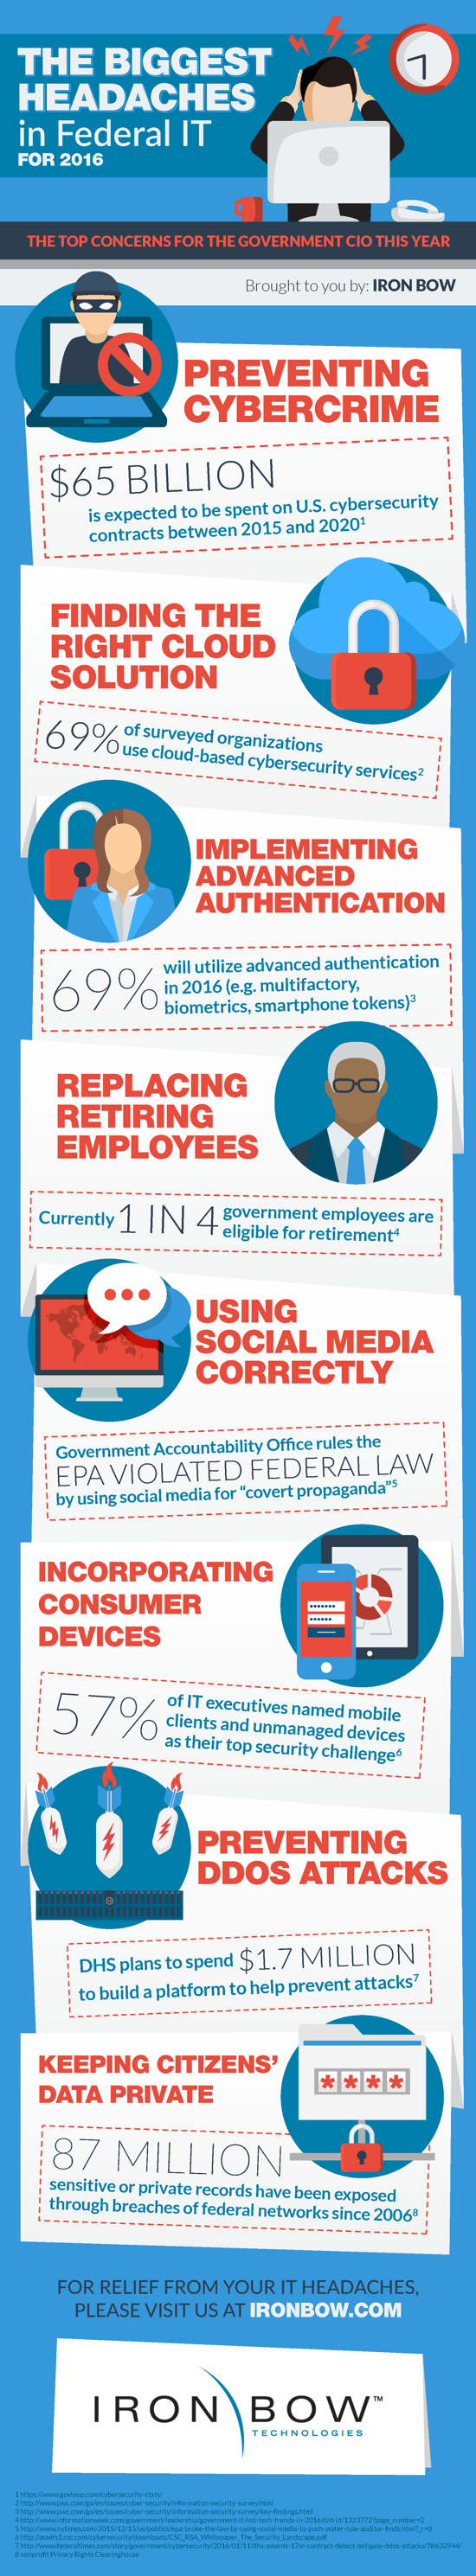 Iron-Bow-Federal-IT-Infographic